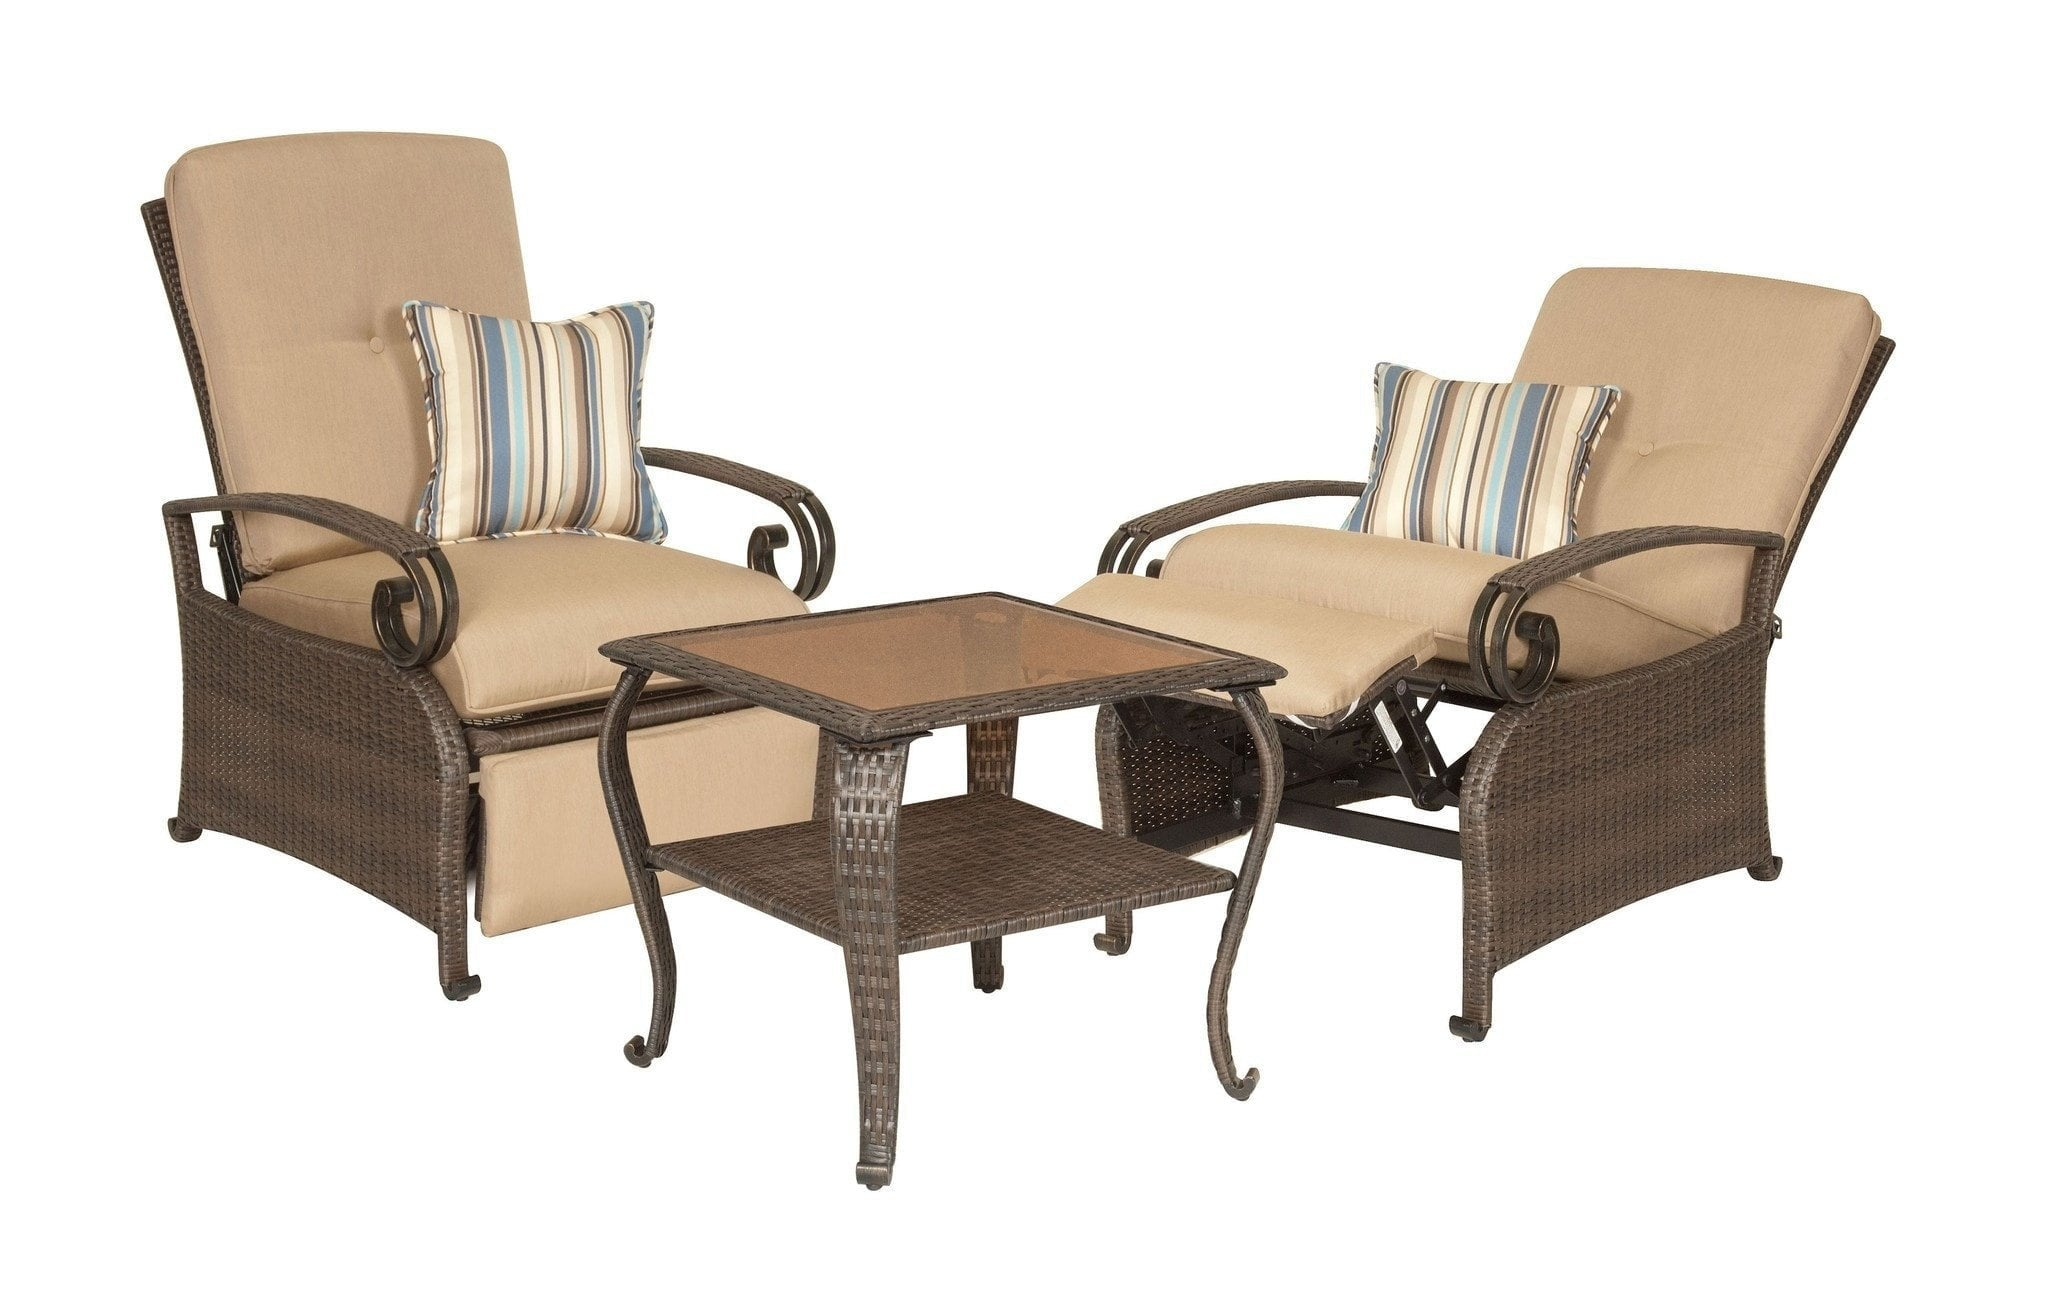 Recliner   Lake Como Combo: Two Patio Recliners And Side Table (Khaki Tan)